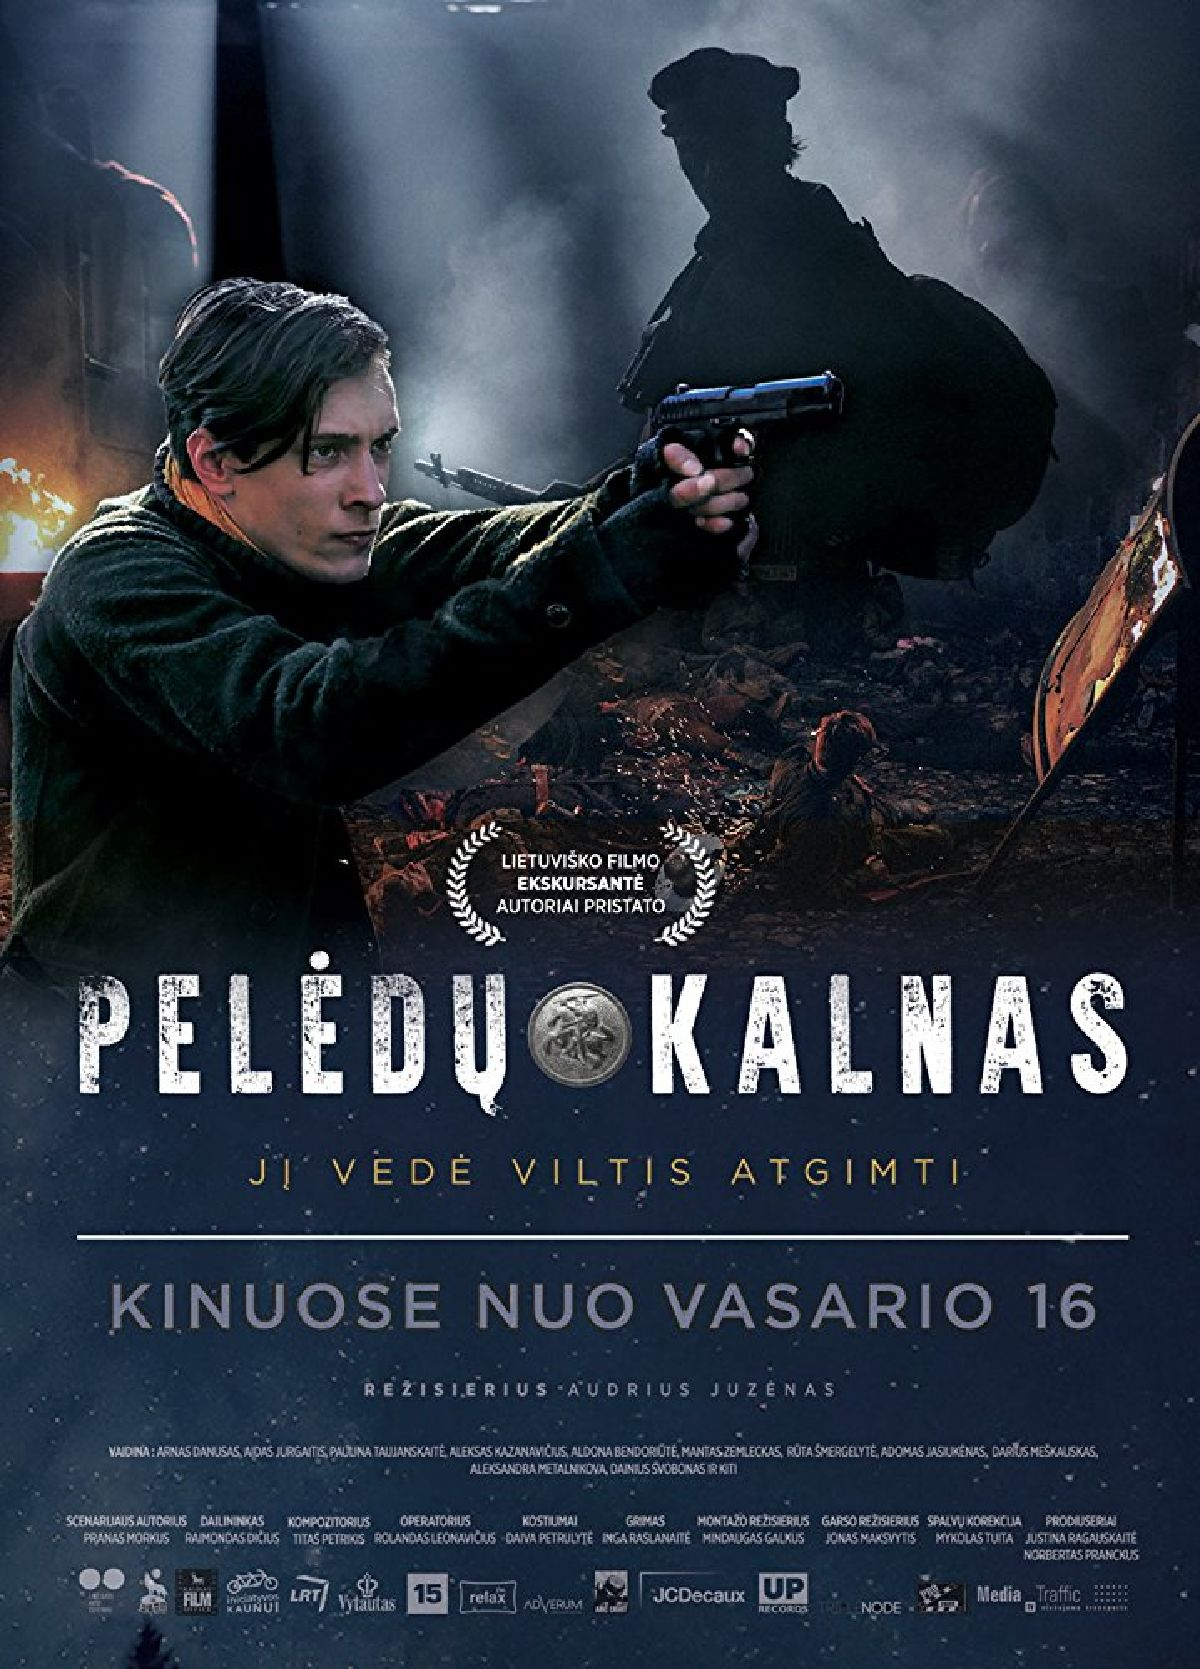 'Peledu Kalnas' movie poster